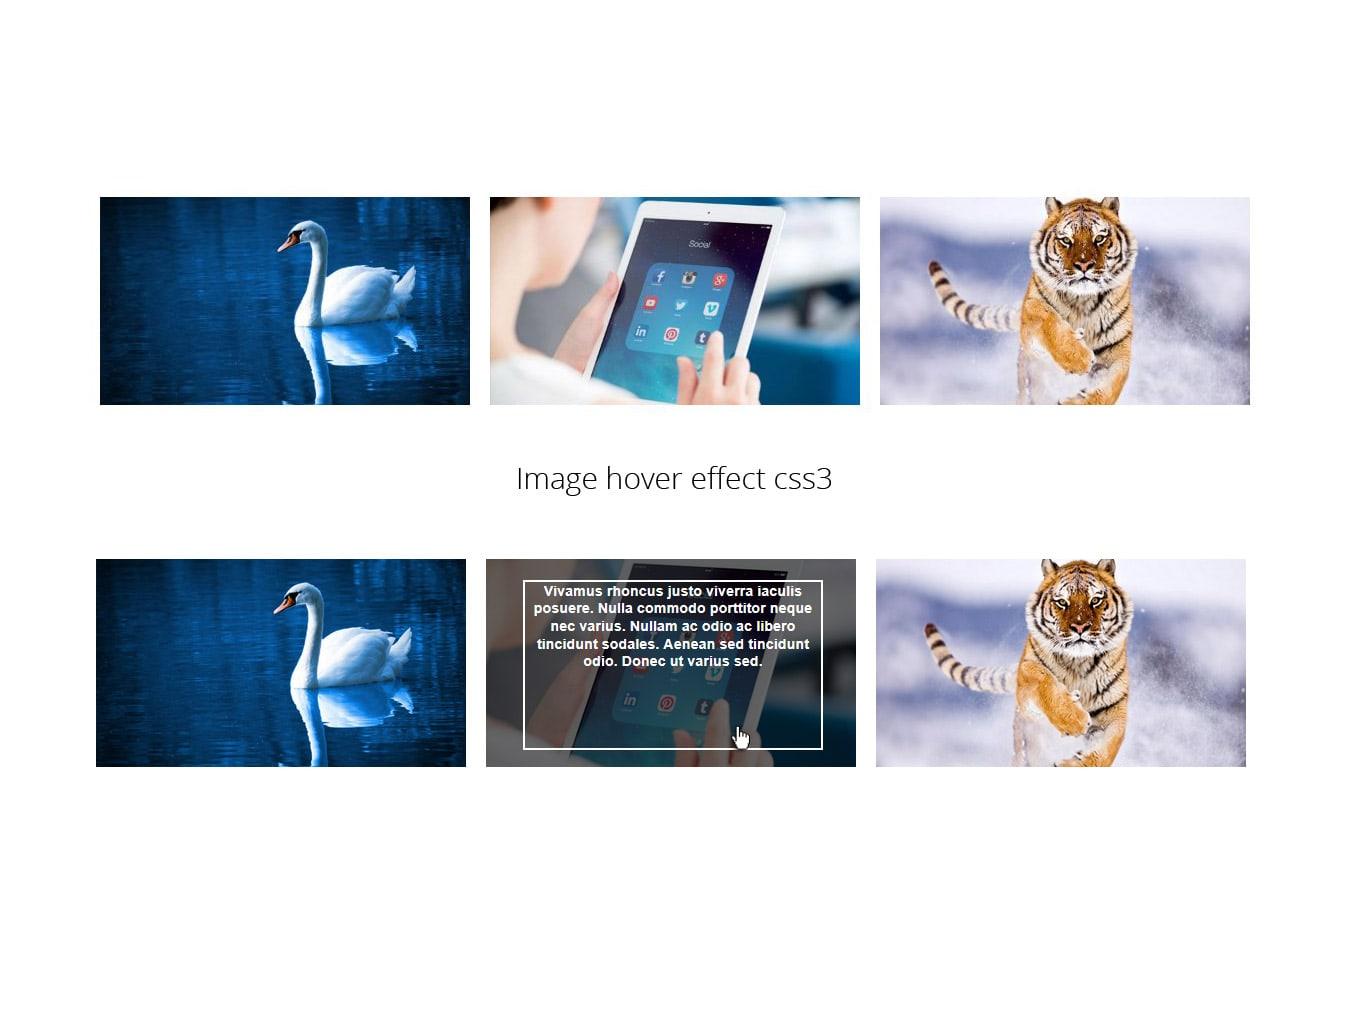 Image hover effect CSS3